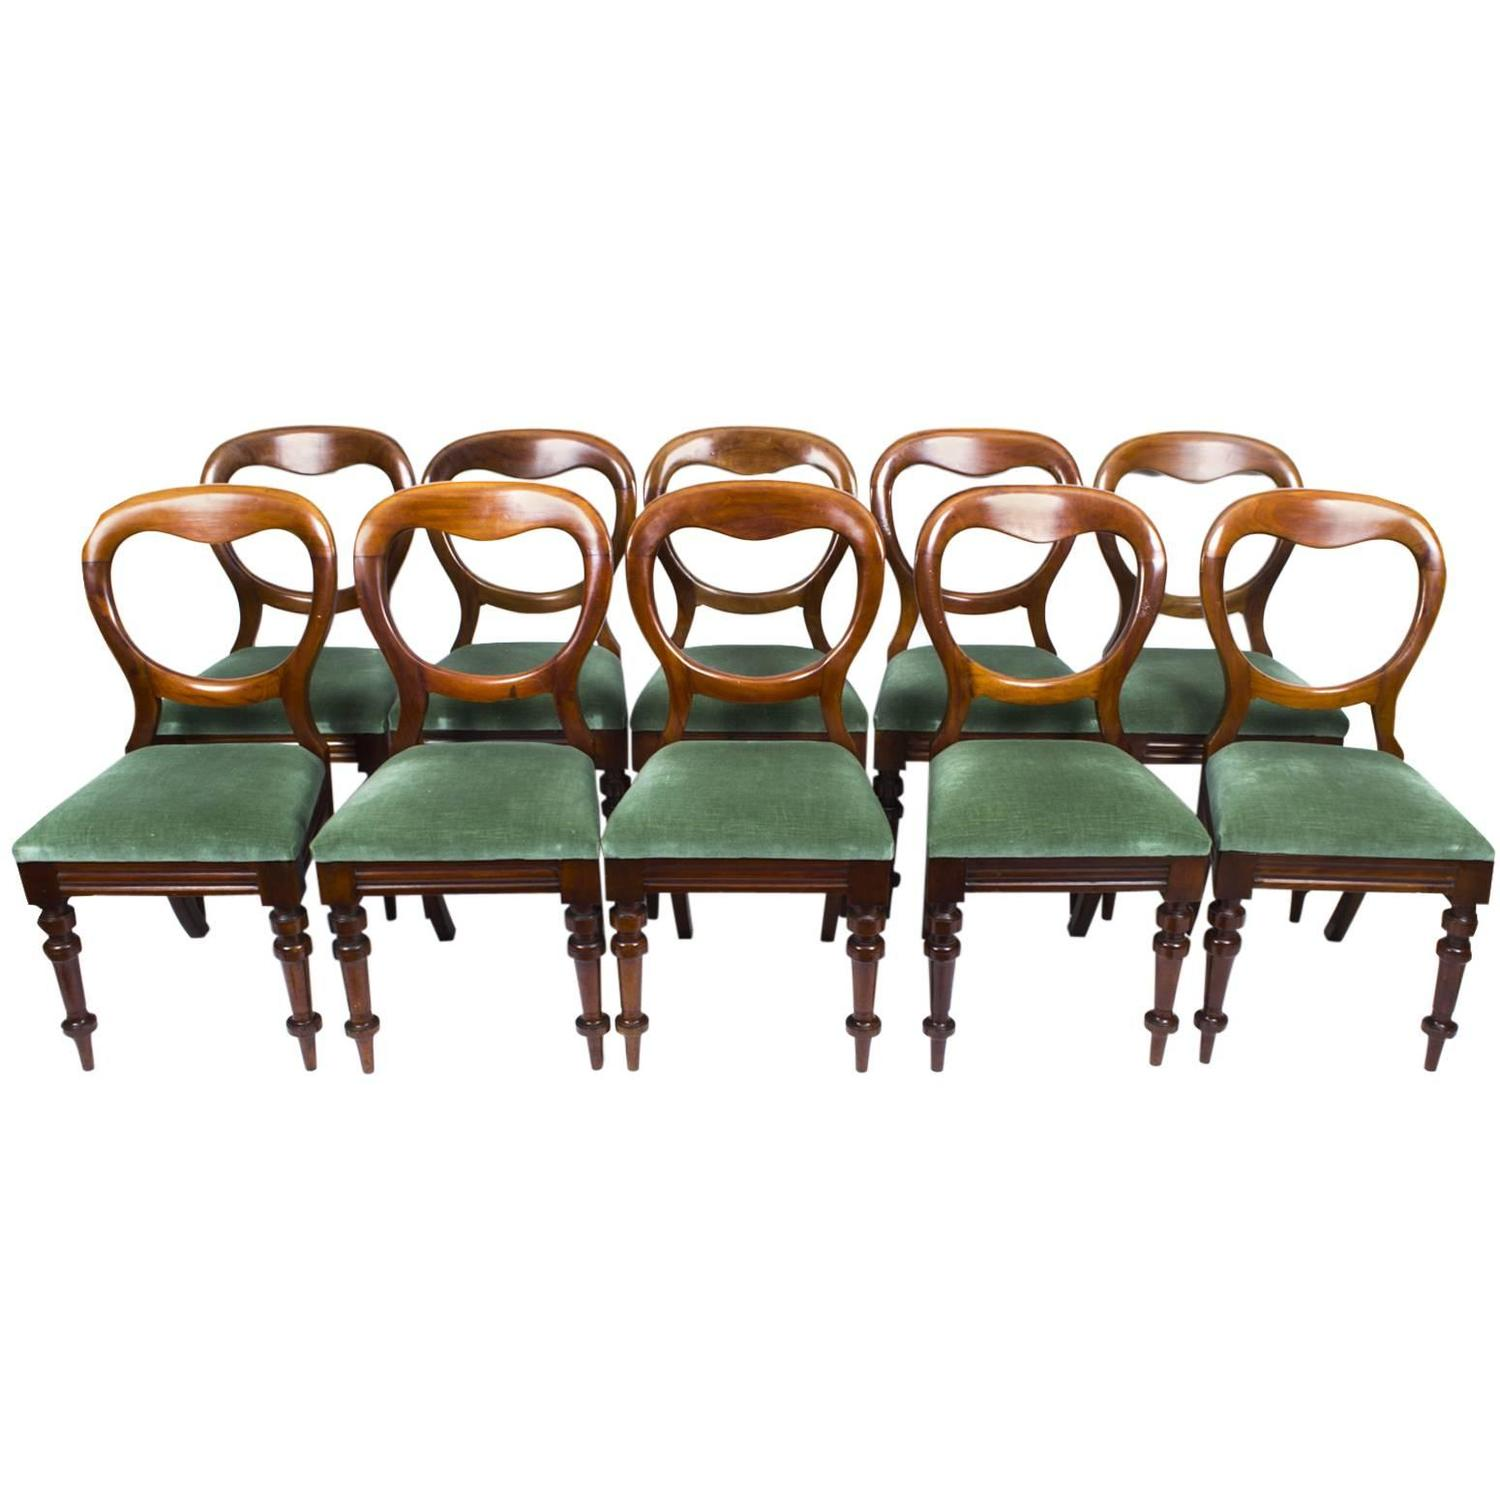 Antique Set of Ten Victorian Balloon Back Dining Chairs circa